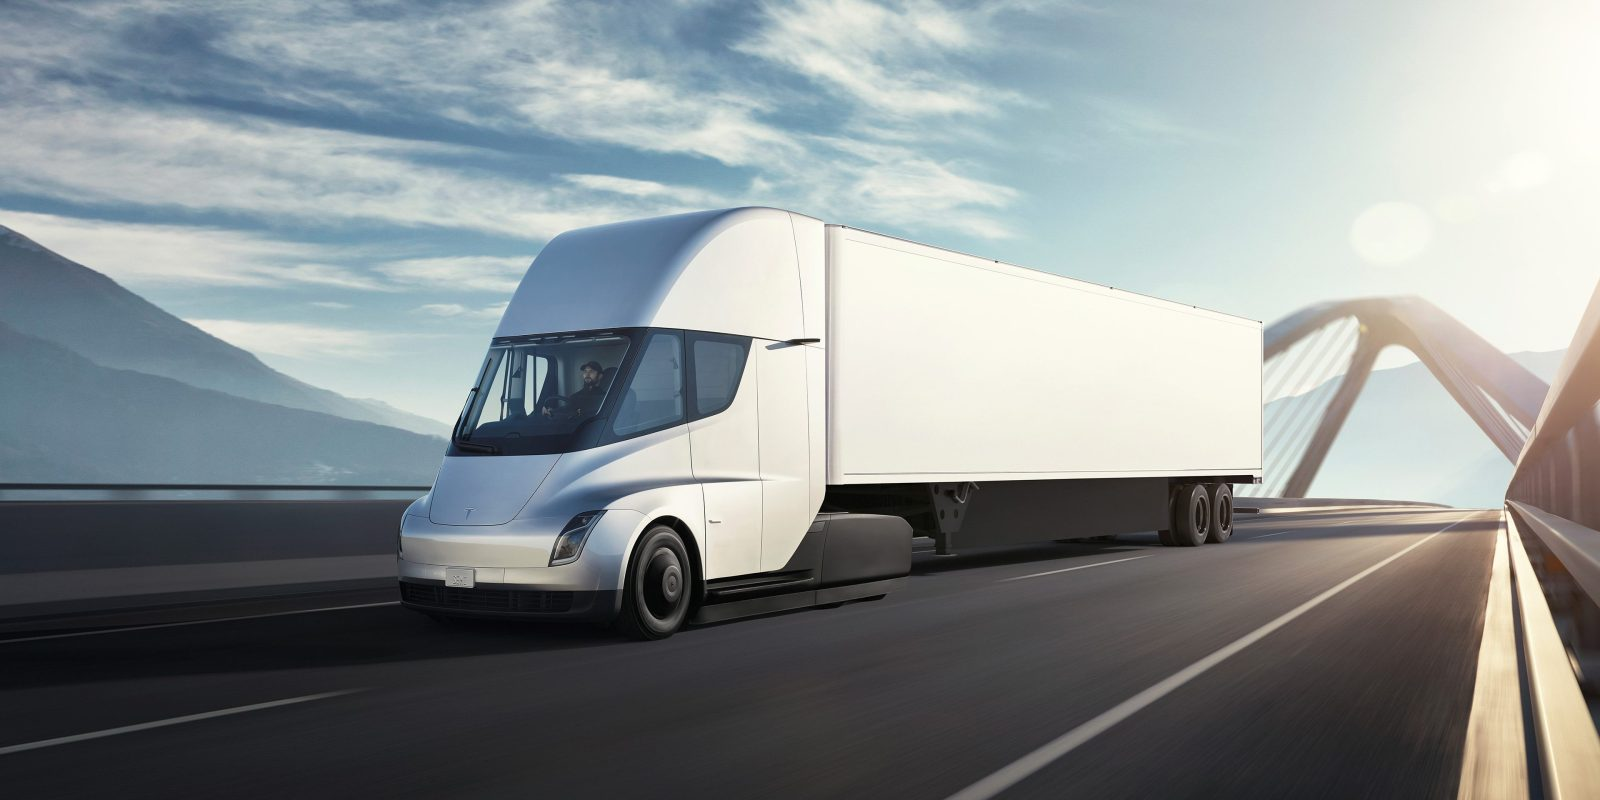 hight resolution of tesla semi is not scaring daimler ceo throws cold water and says they will dominate electric trucks